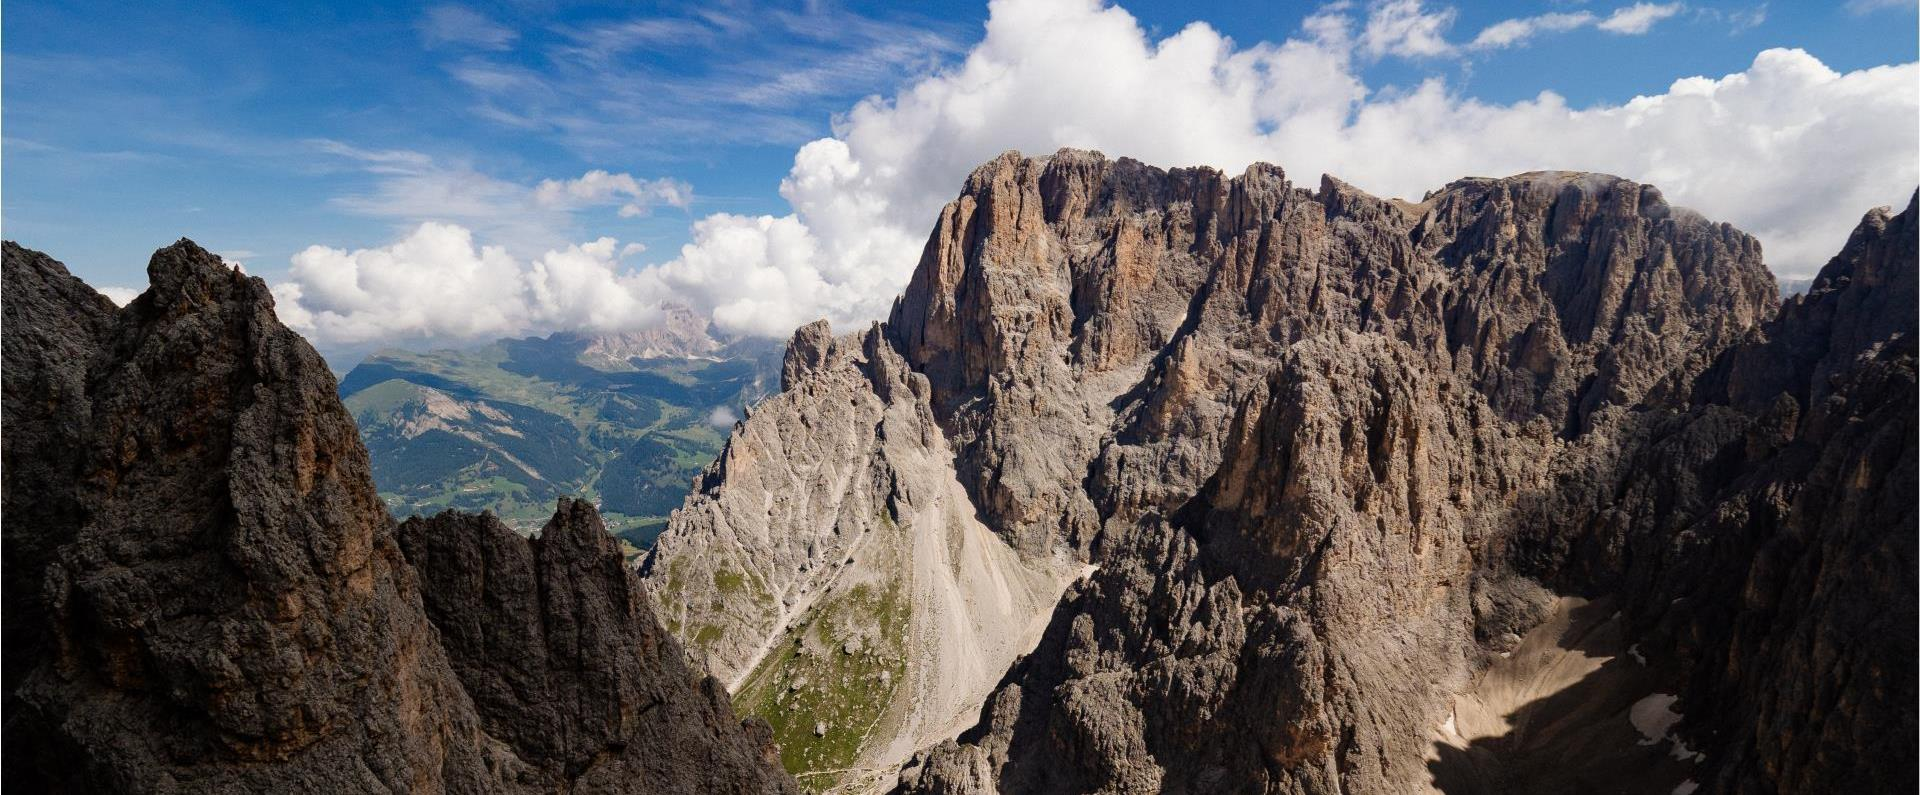 the dolomite mountains in Italy: Panoramic view